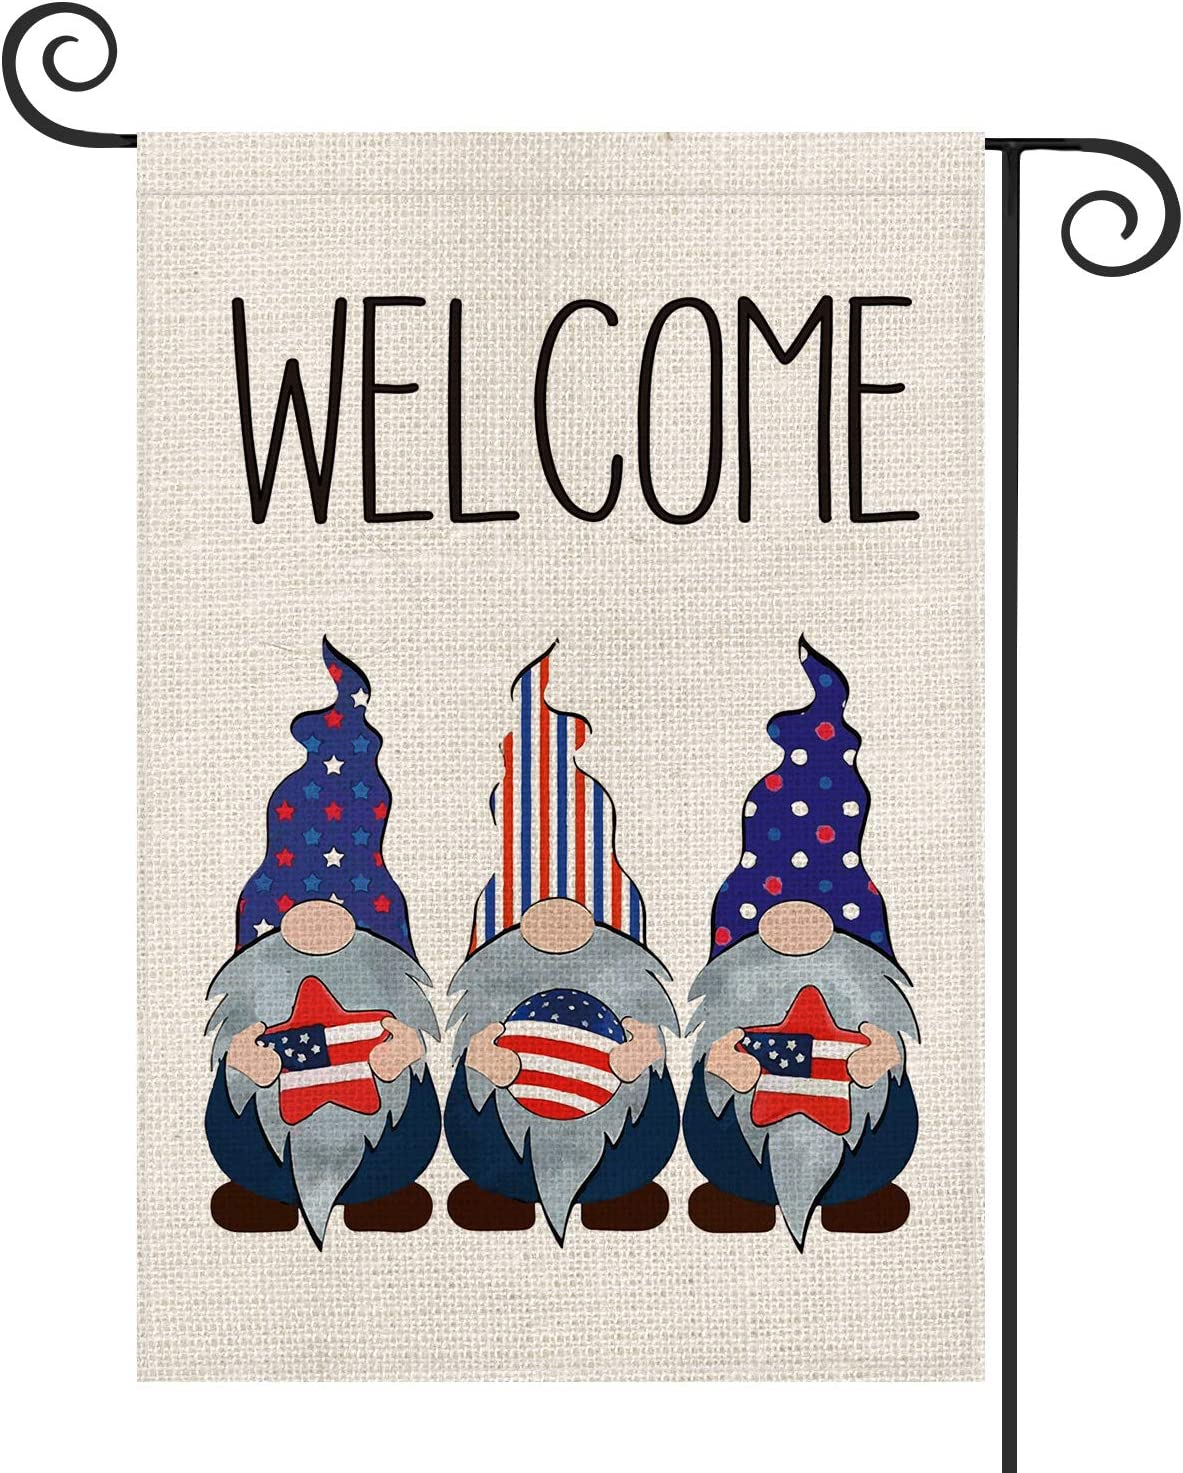 AVOIN Welcome Strip and Star American Flag Gnomes Garden Flag Double Sided, 4th of July Patriotic Memorial Day Independence Day Yard Outdoor Decoration 12.5 x 18 Inch